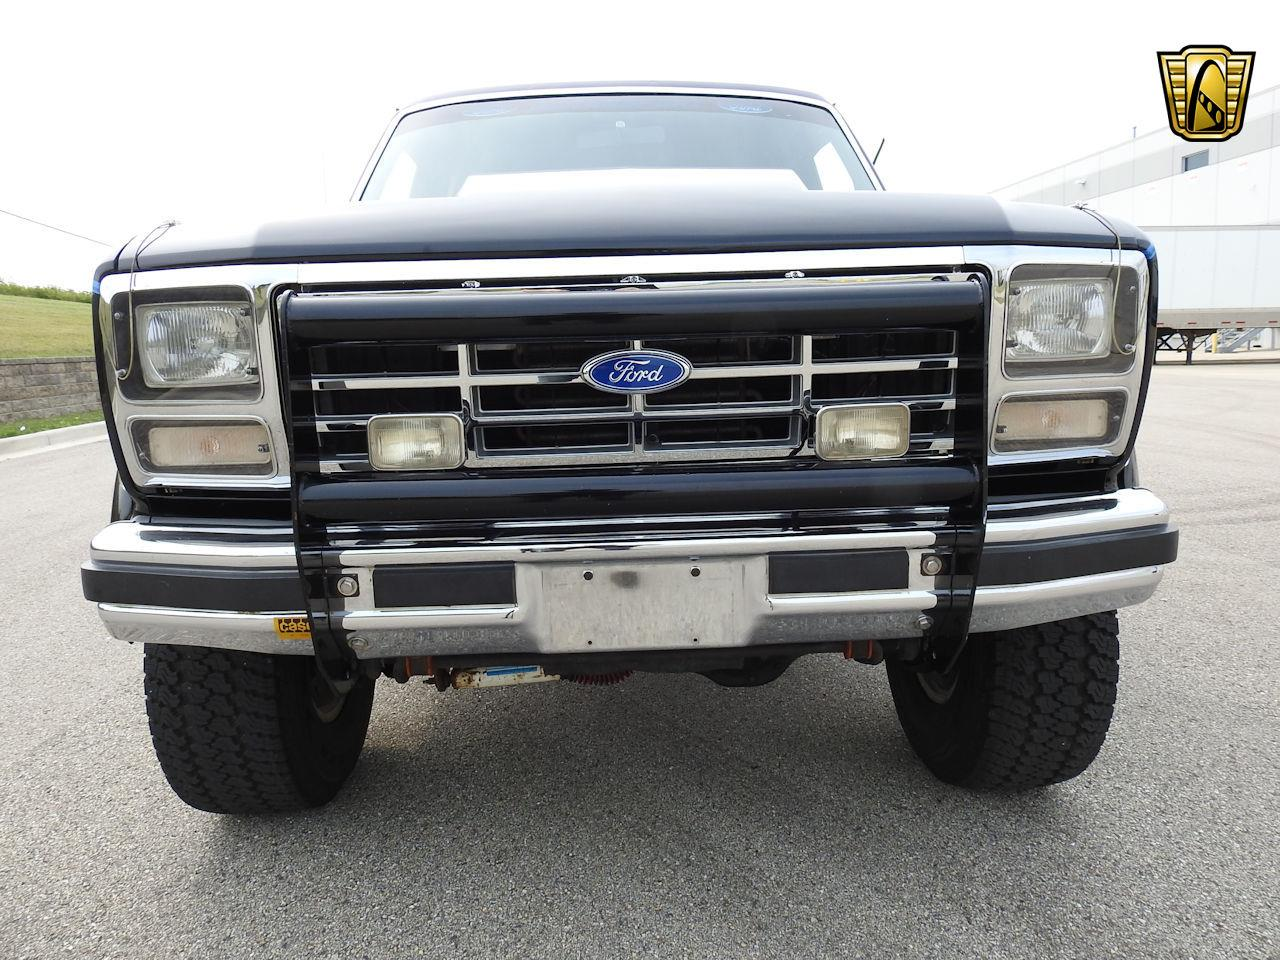 1980 Ford Bronco For Sale Cc 1135085 Headlights Large Picture Of Located In Wisconsin Offered By Gateway Classic Cars Milwaukee